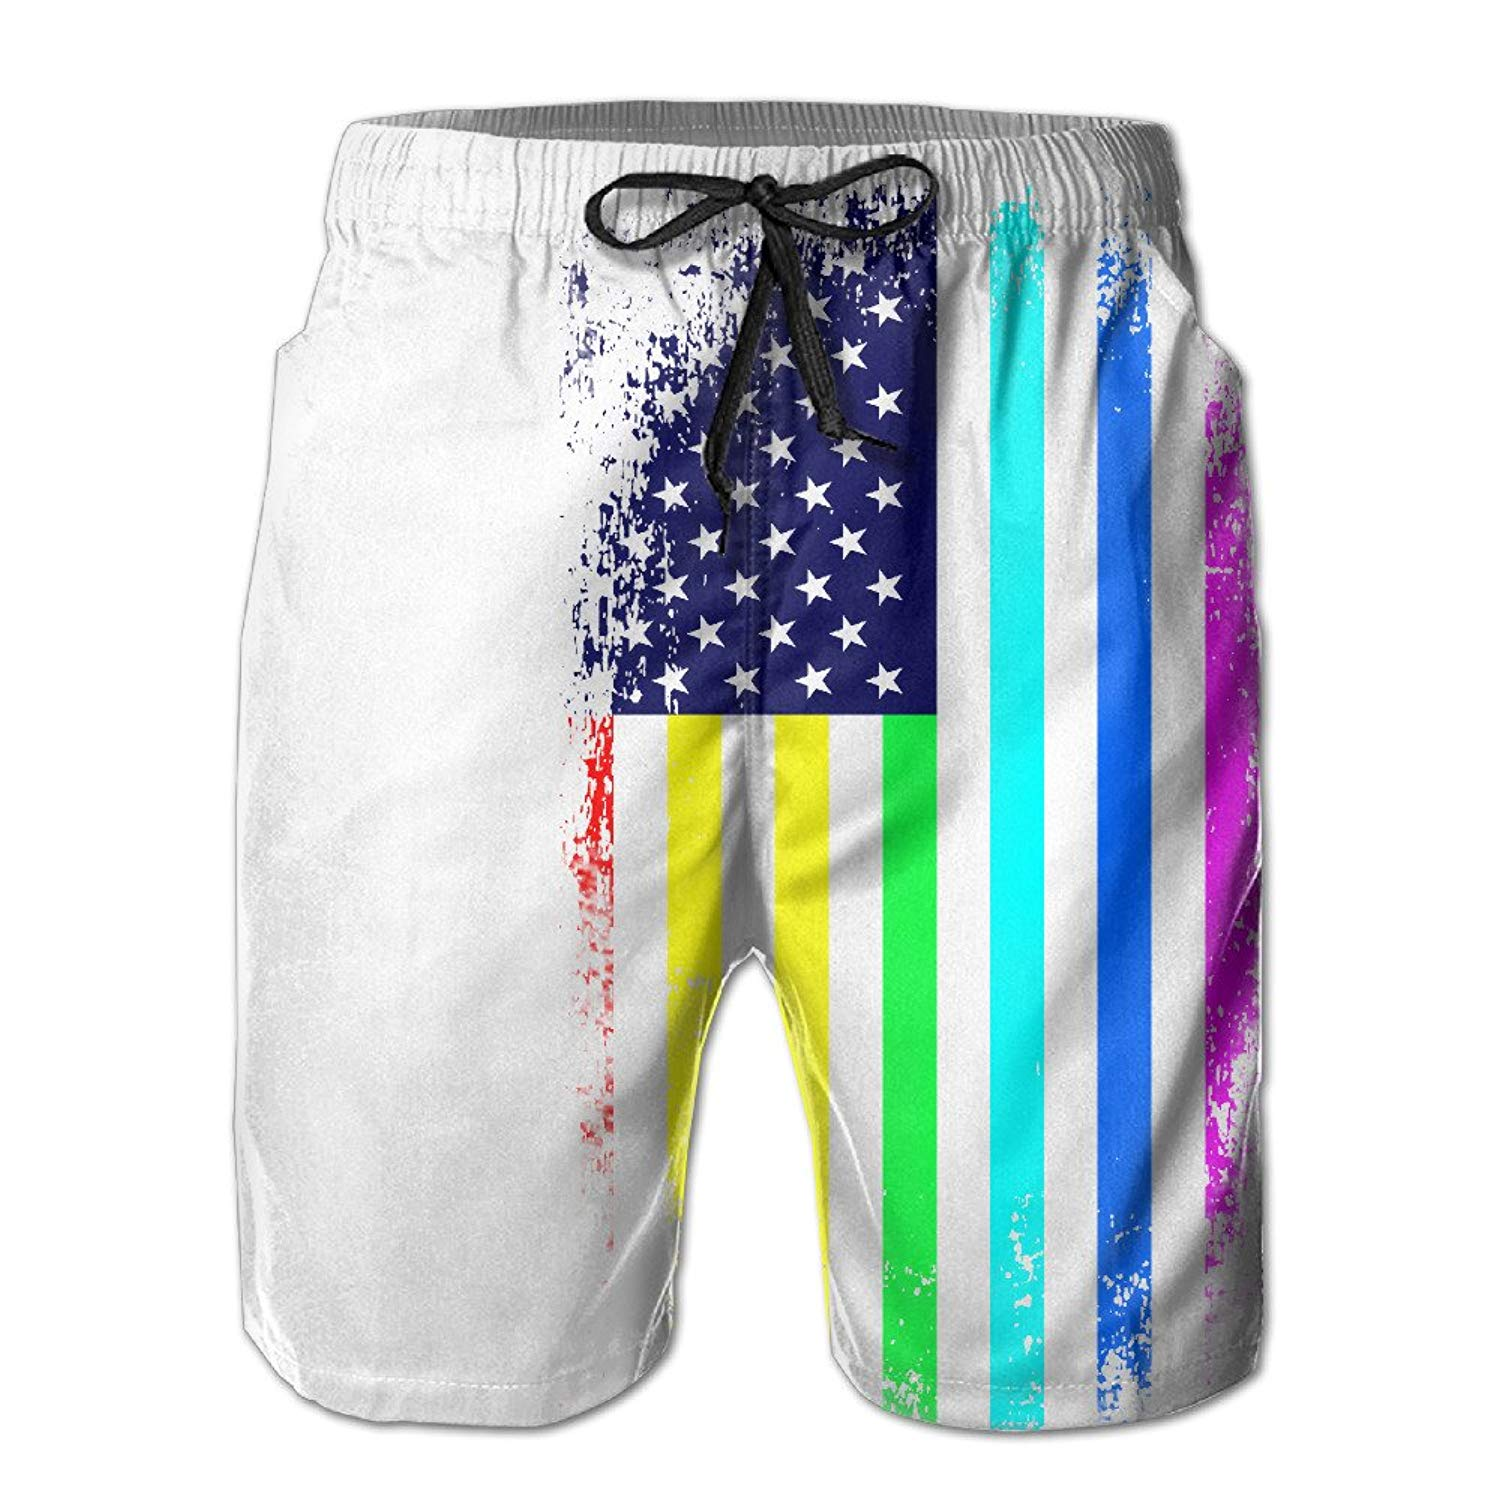 2f4bbddfb0 Clothing, Shoes & Jewelry CMEY Mens Board Shorts Jamaican Flag Swim Trunks  Summer Beach Shorts